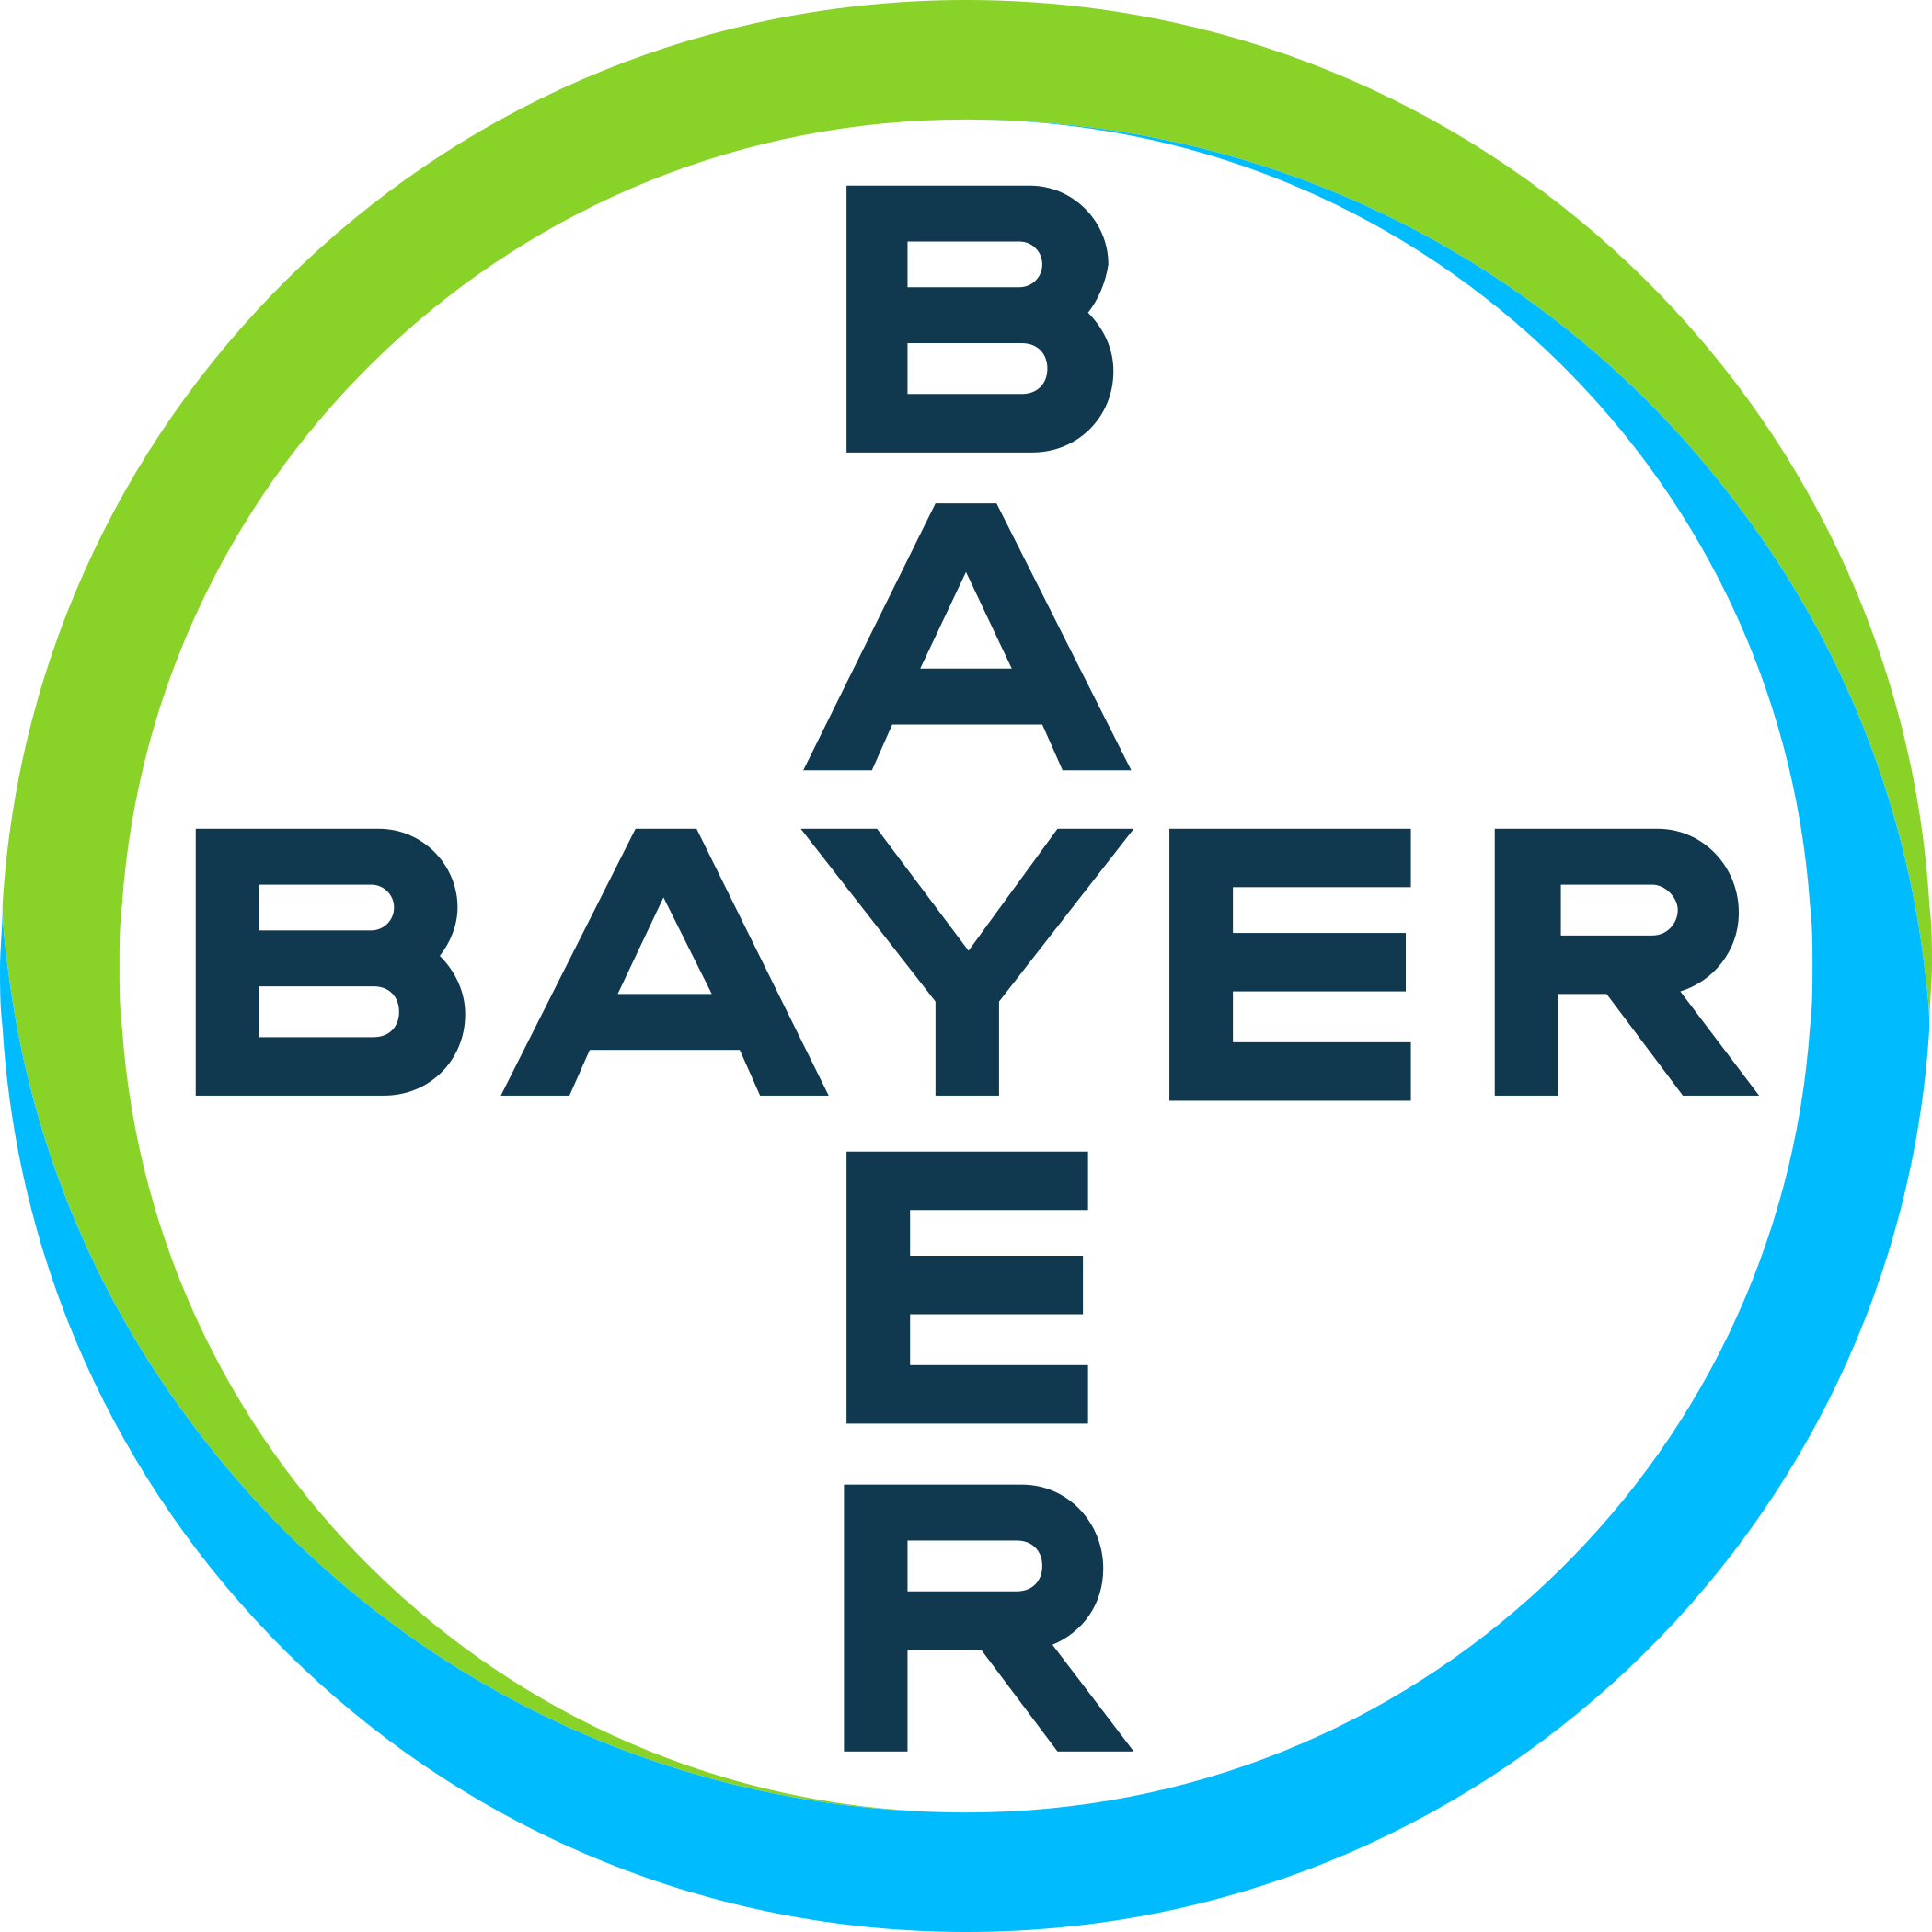 bayer-logo-color